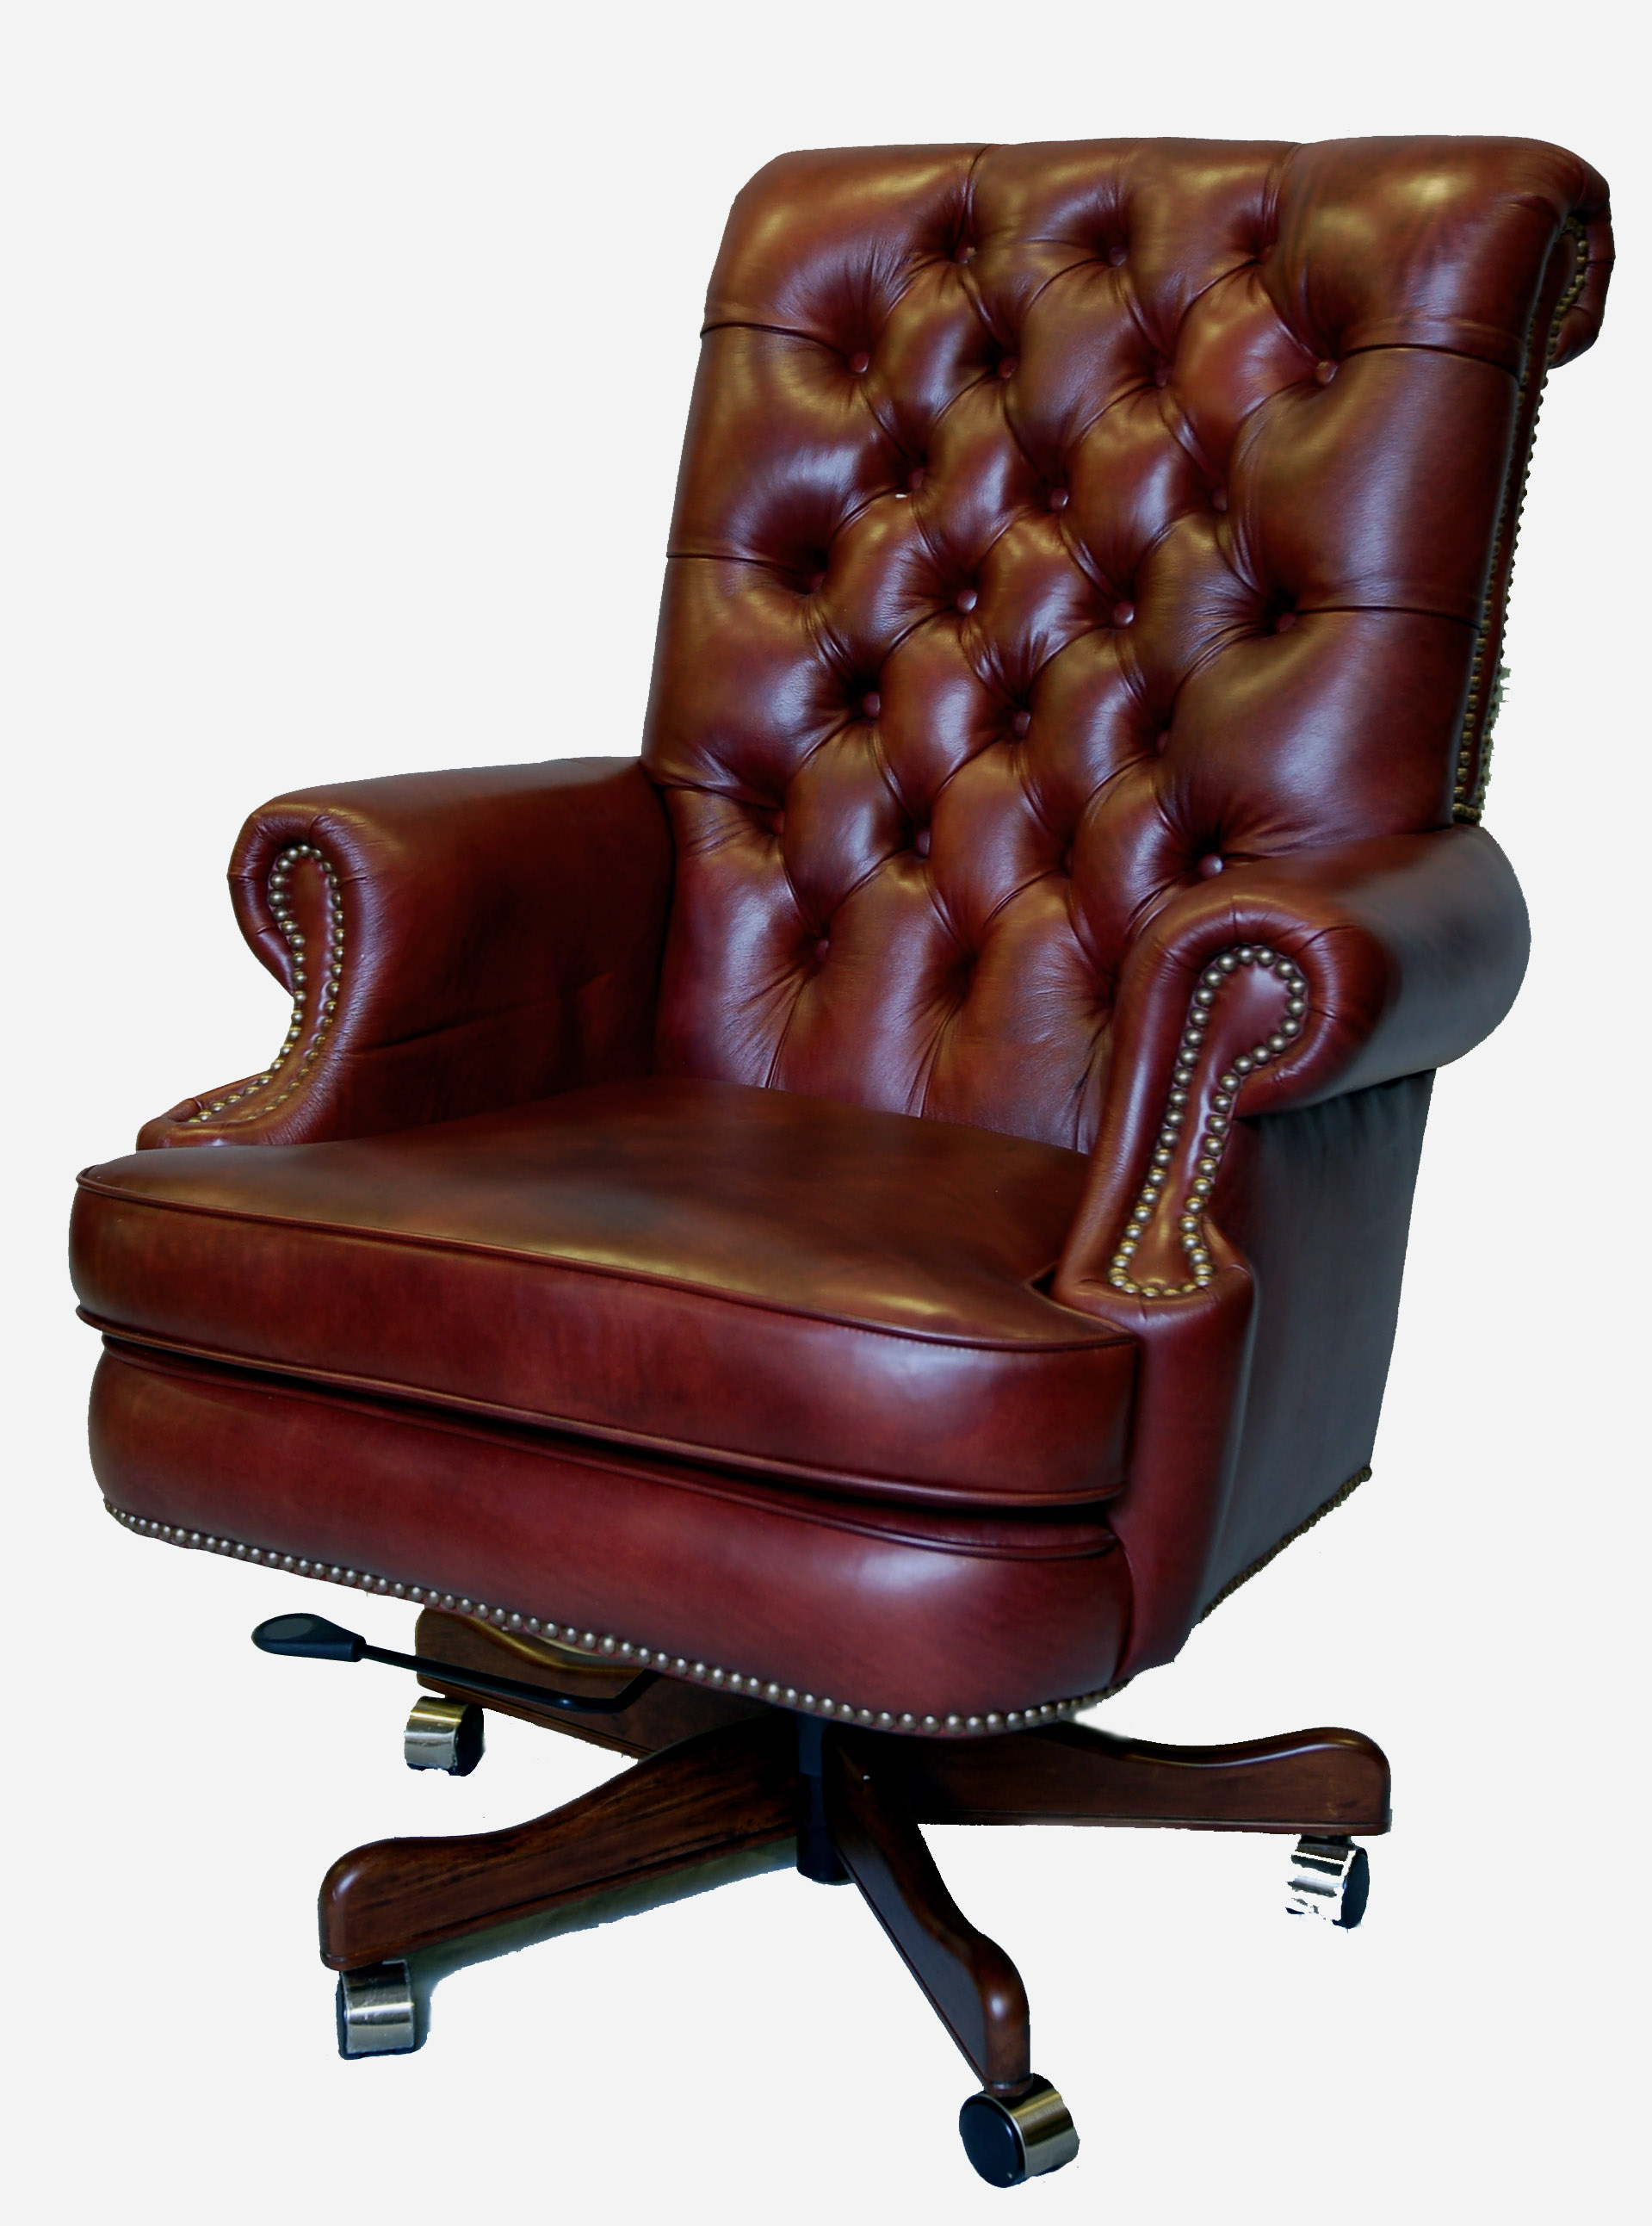 leather executive chair full view exp